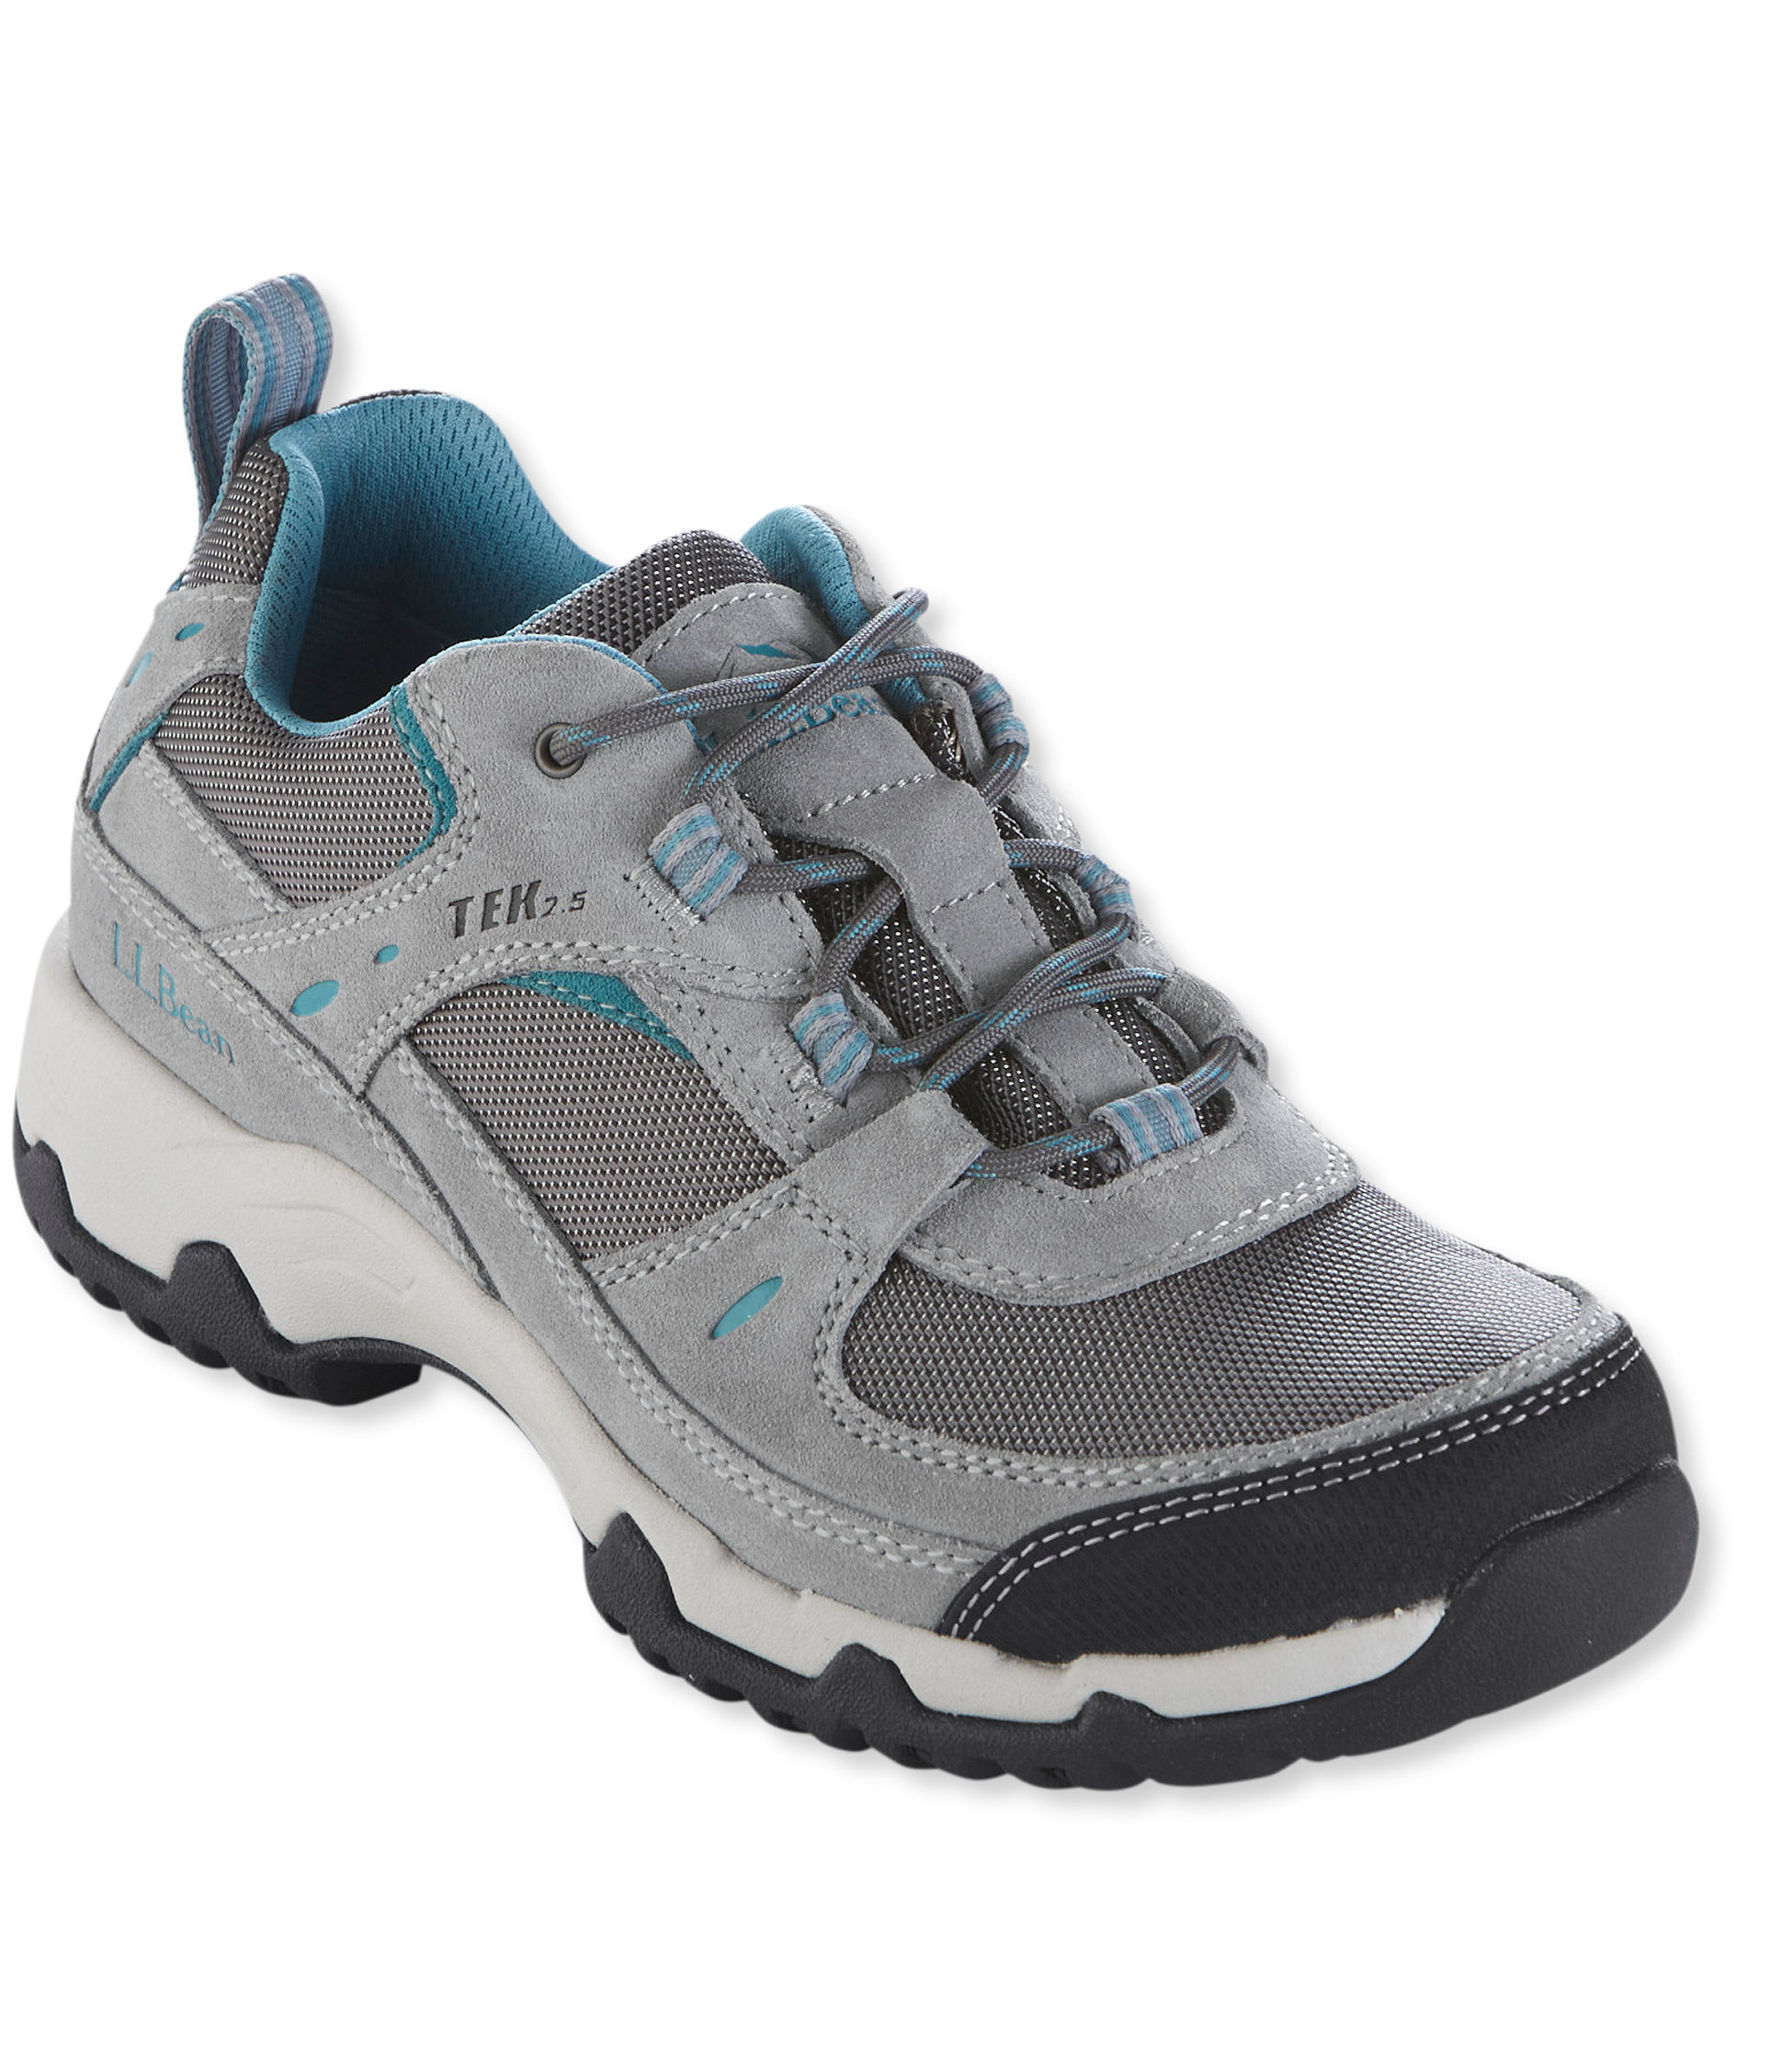 L.L.Bean Trail Model 4 Waterproof Hiking Shoes